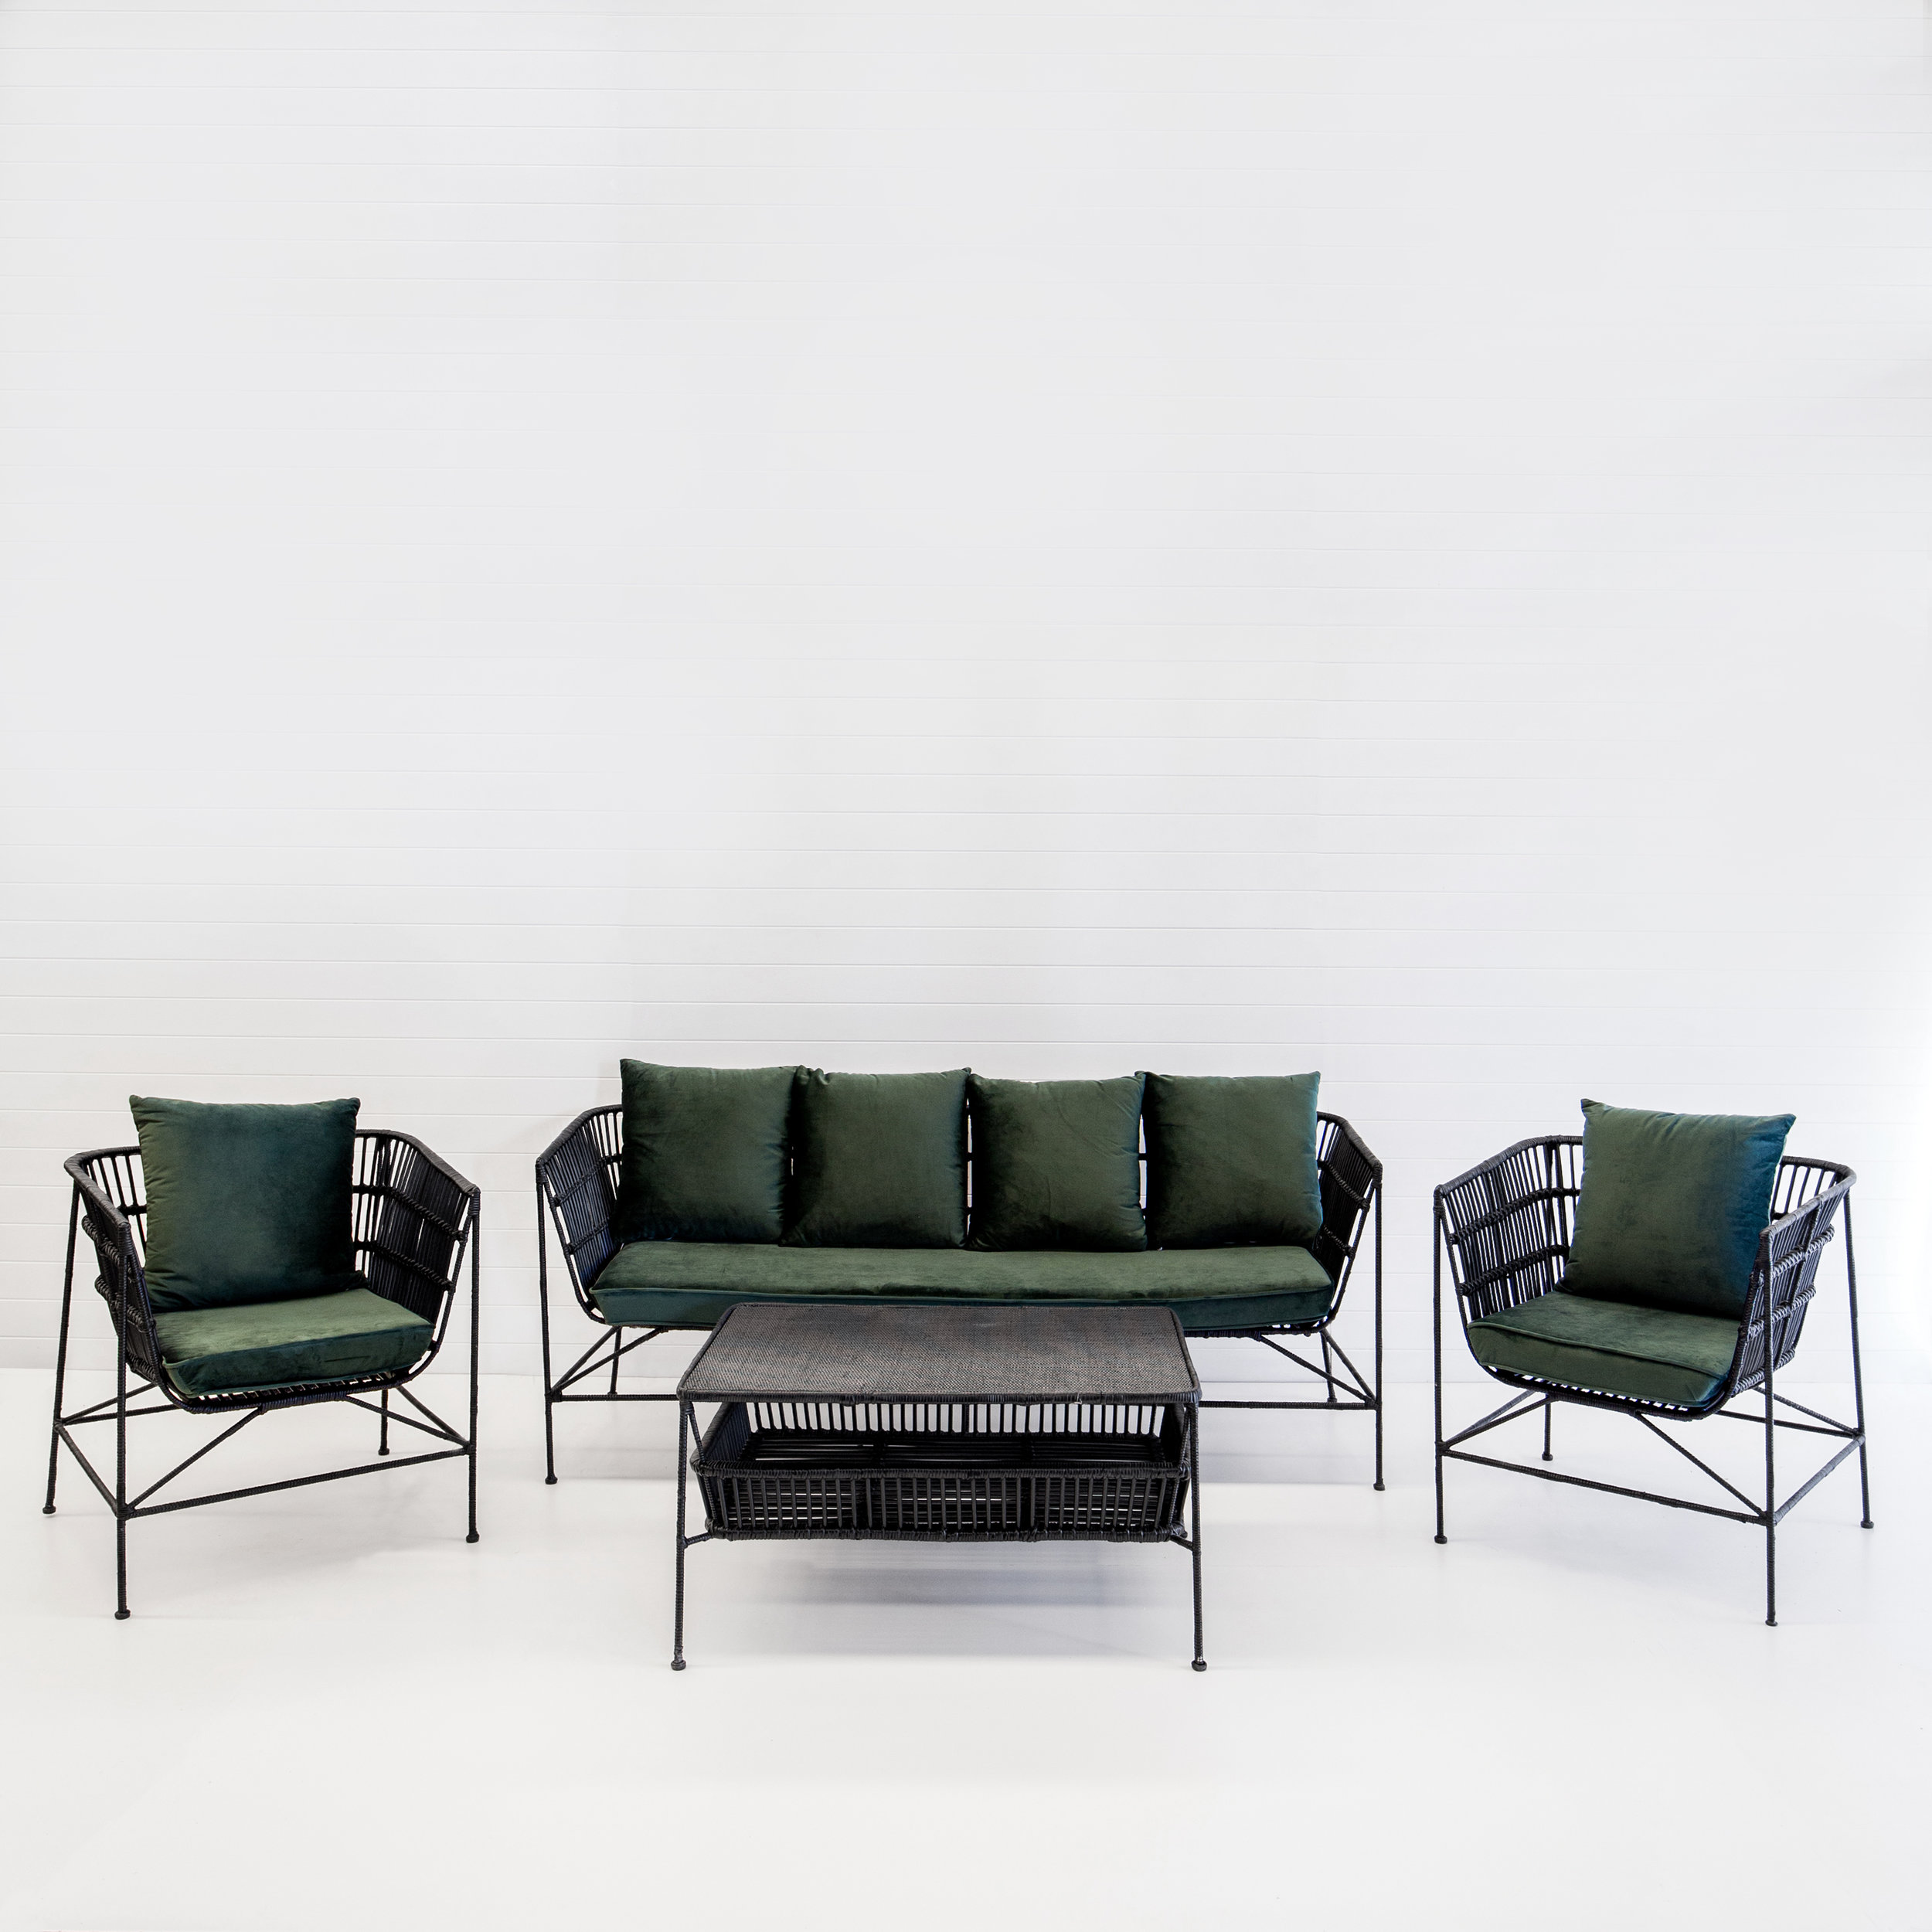 INDIE BLACK SOFA PACKAGE WITH EMERALD VELVET CUSHIONS